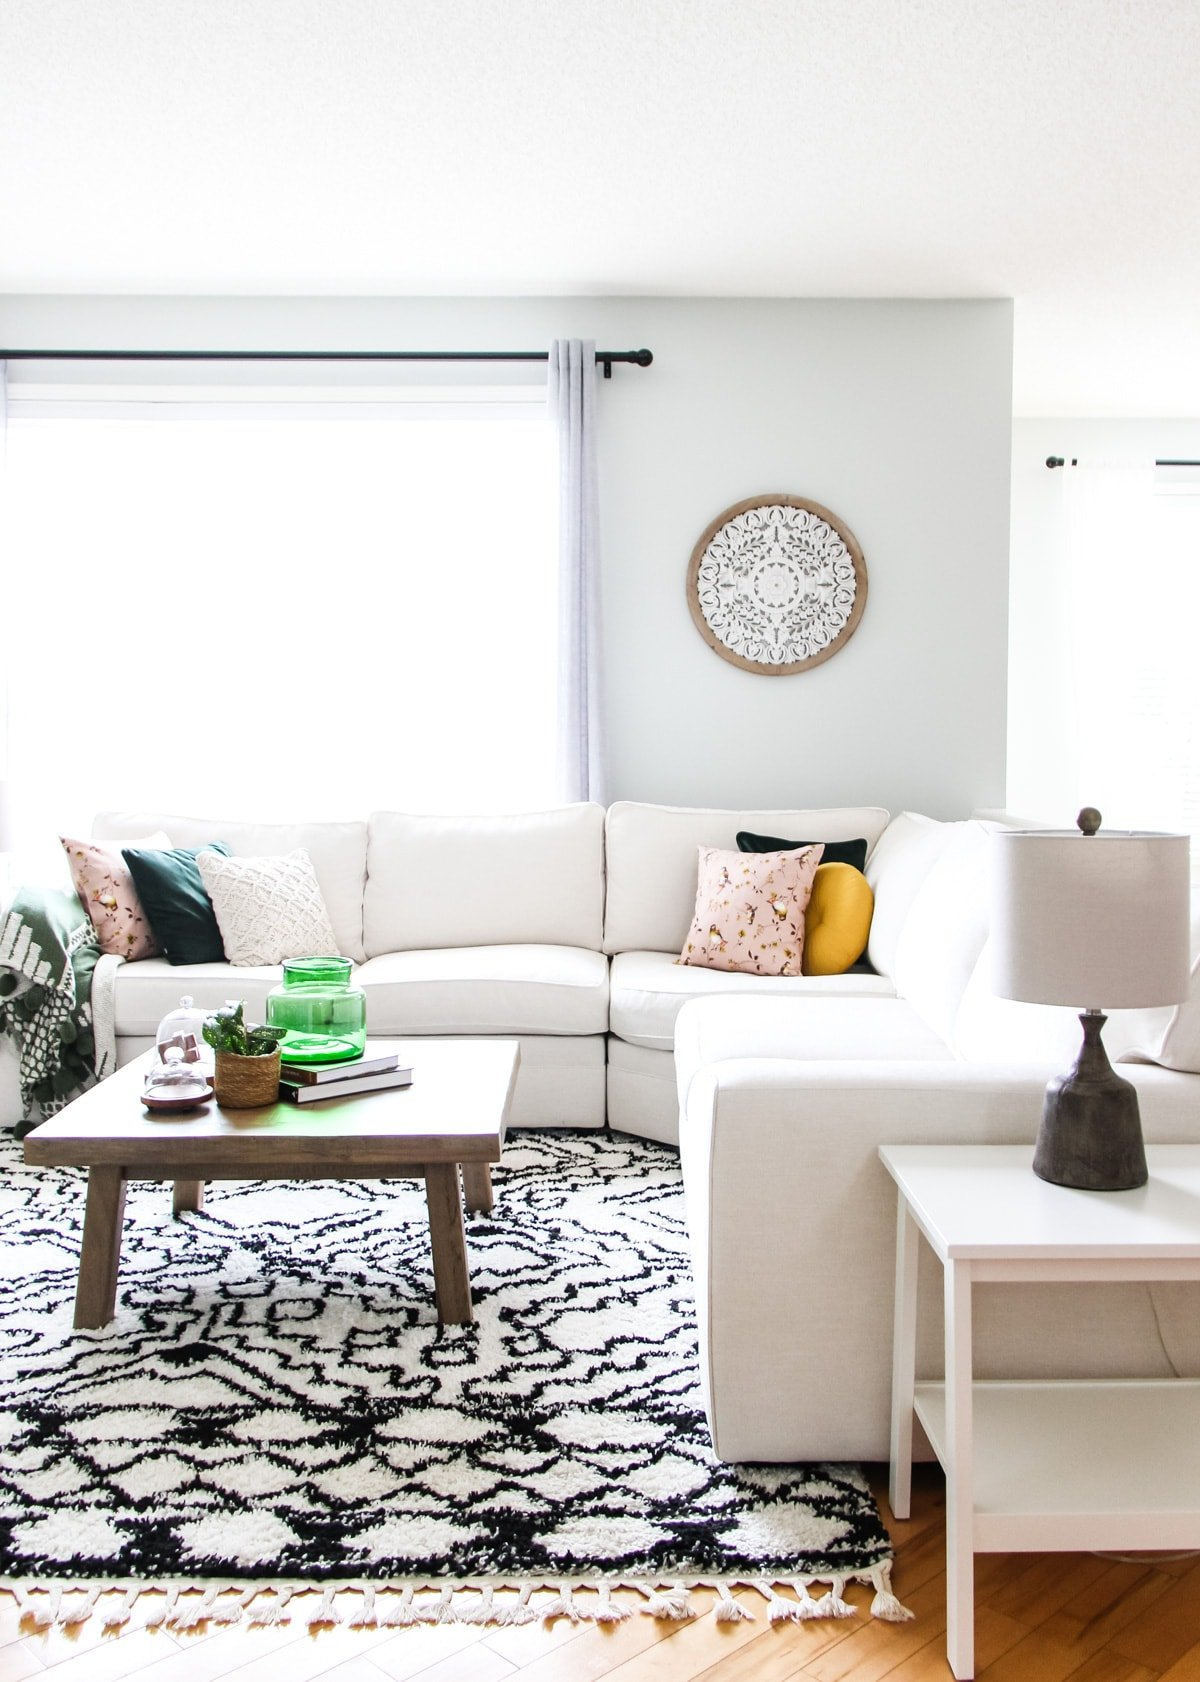 a bright living room with a cream sectional couch, a wooden coffee table holding a green vase, books and a plant, a black and white rug